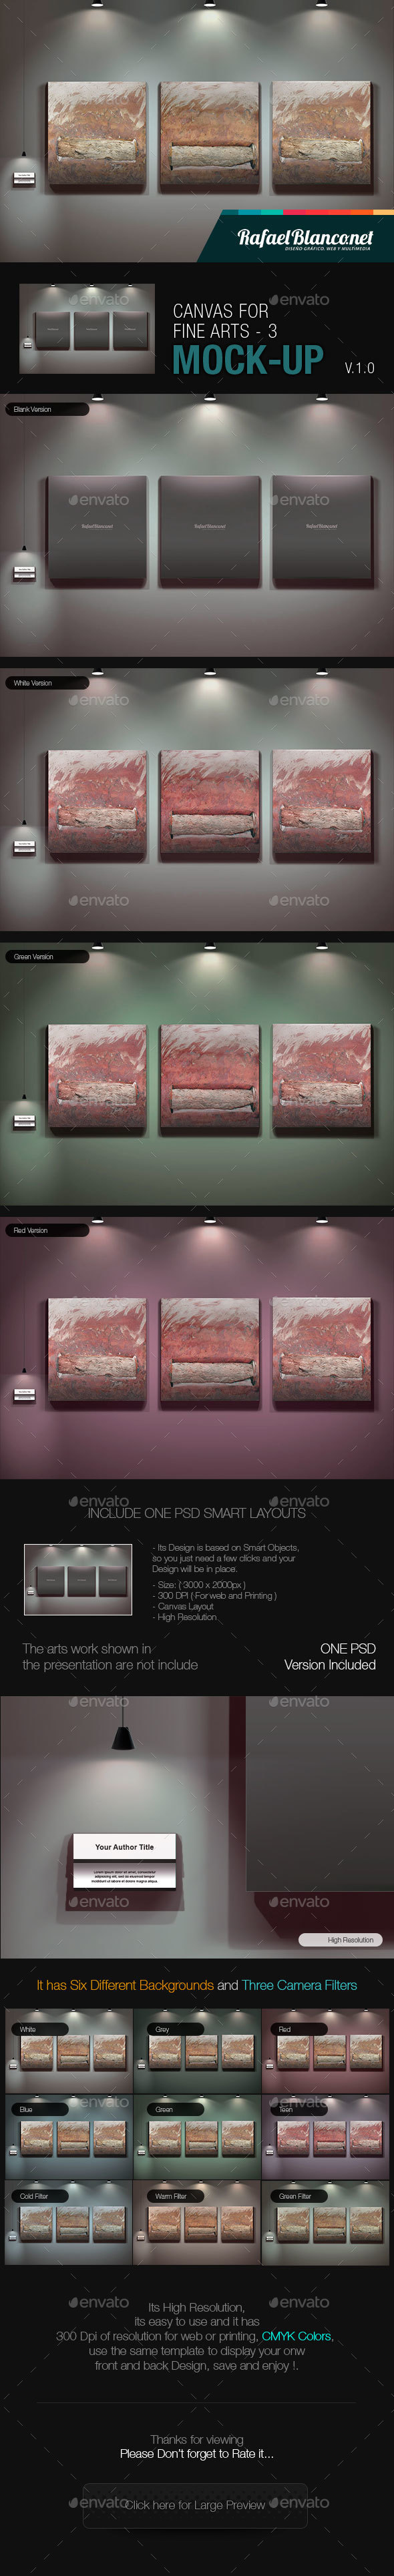 Canvas for Fine Arts Mock-Up 3 - Miscellaneous Displays